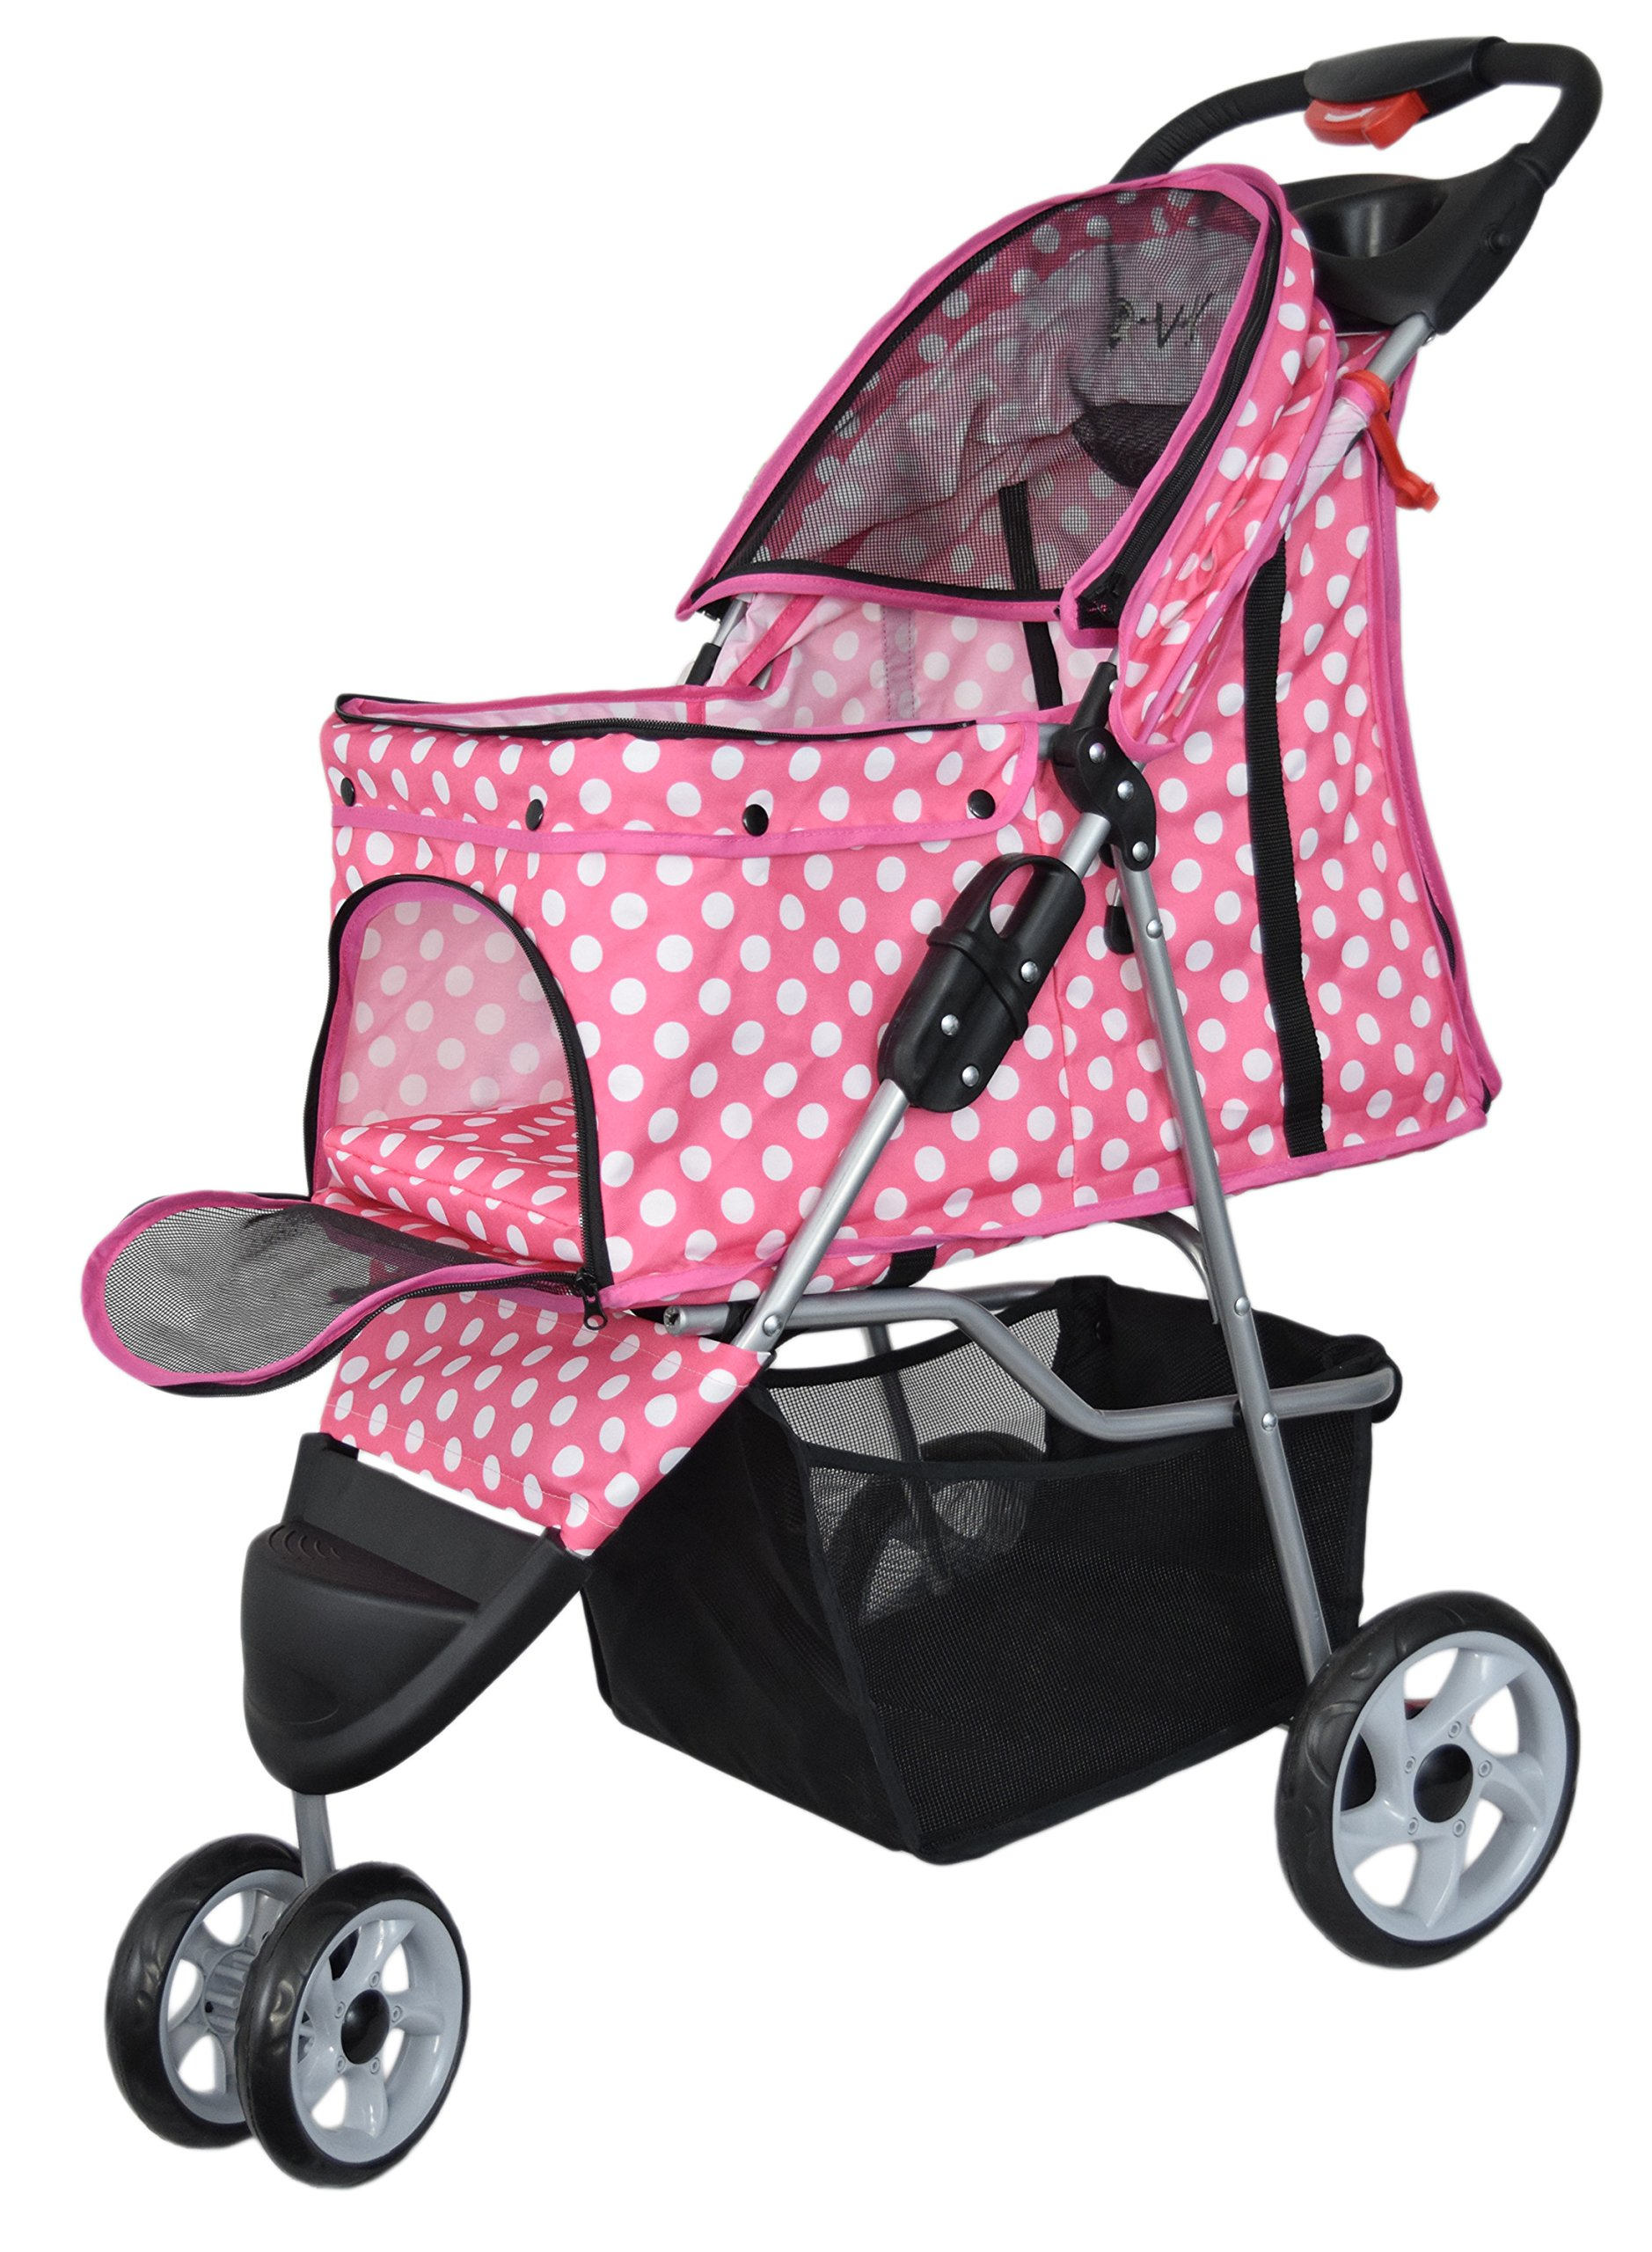 VIVO Three Wheel Pet Stroller, for Cat, Dog and More, Foldable Carrier Strolling Cart, Multiple Colors (Pink & White Polka Dot) by VIVO (Image #4)